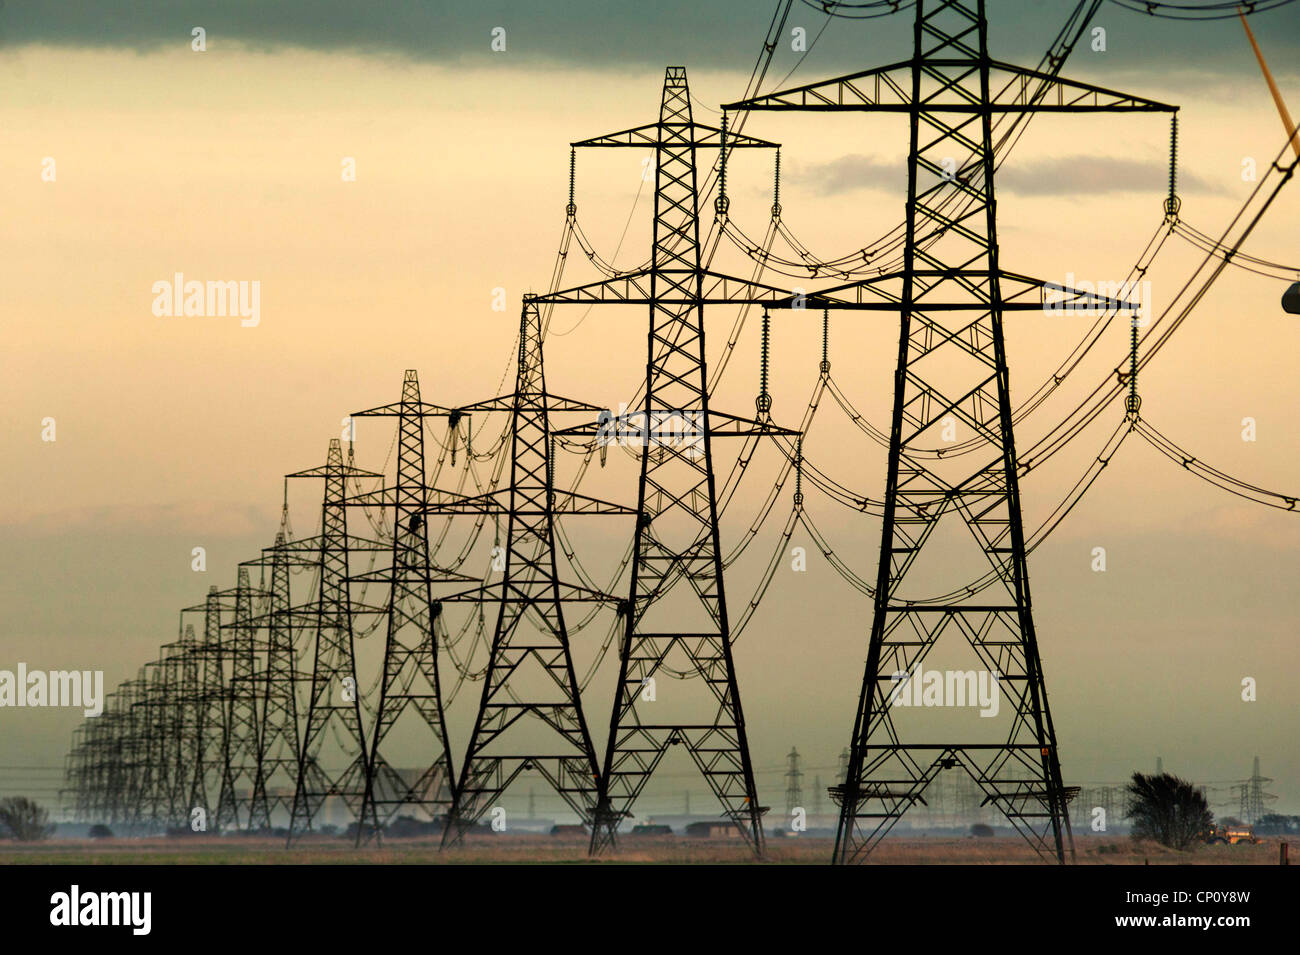 Electricity pylons in southern England. - Stock Image